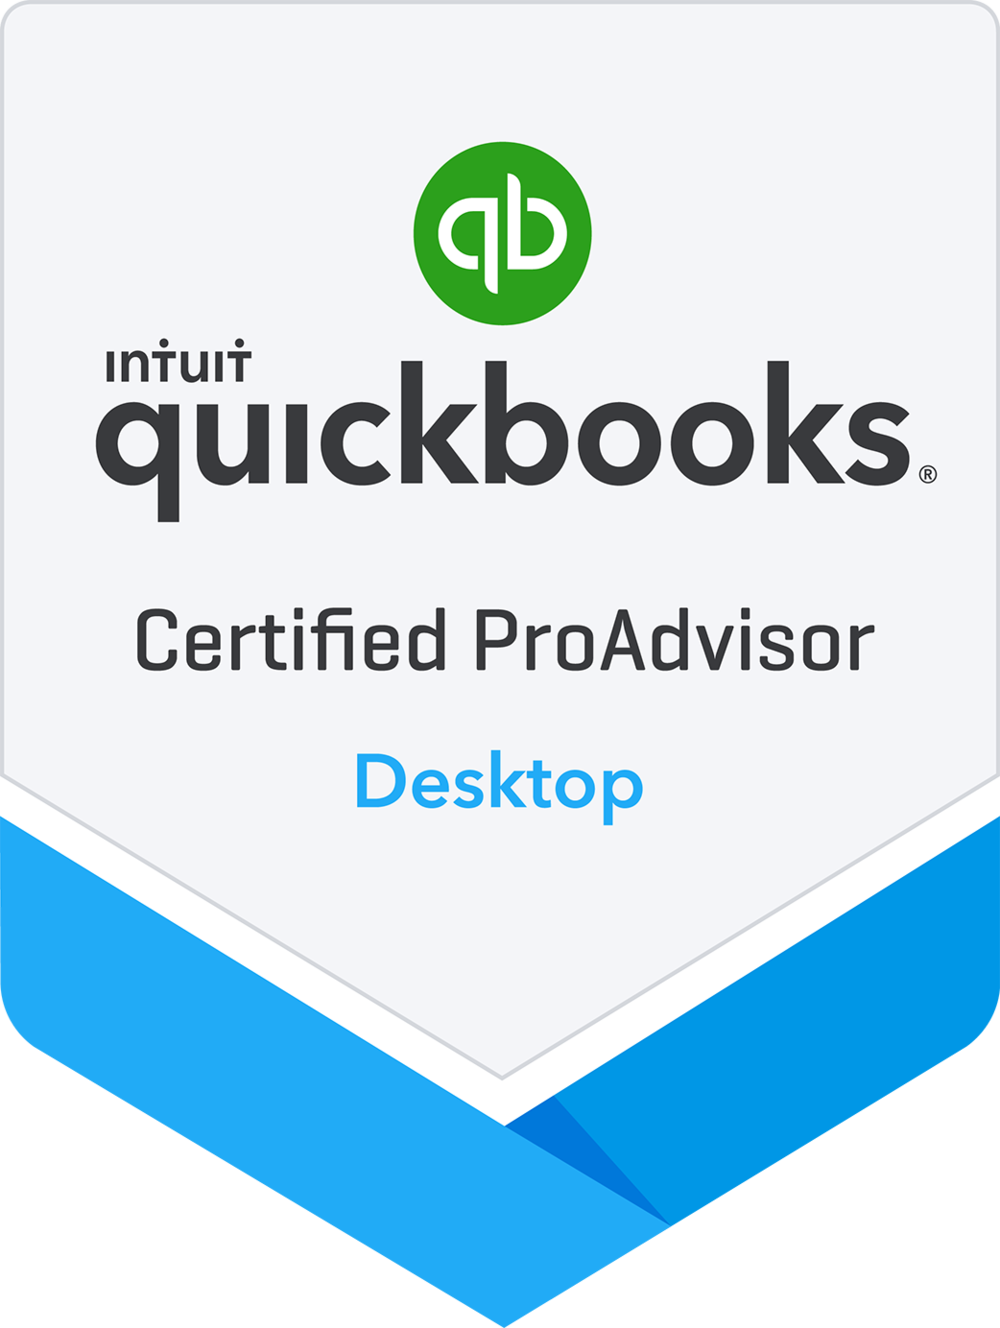 QuickBooks® Certified ProAdvisor Desktop for Twin Cities small businesses